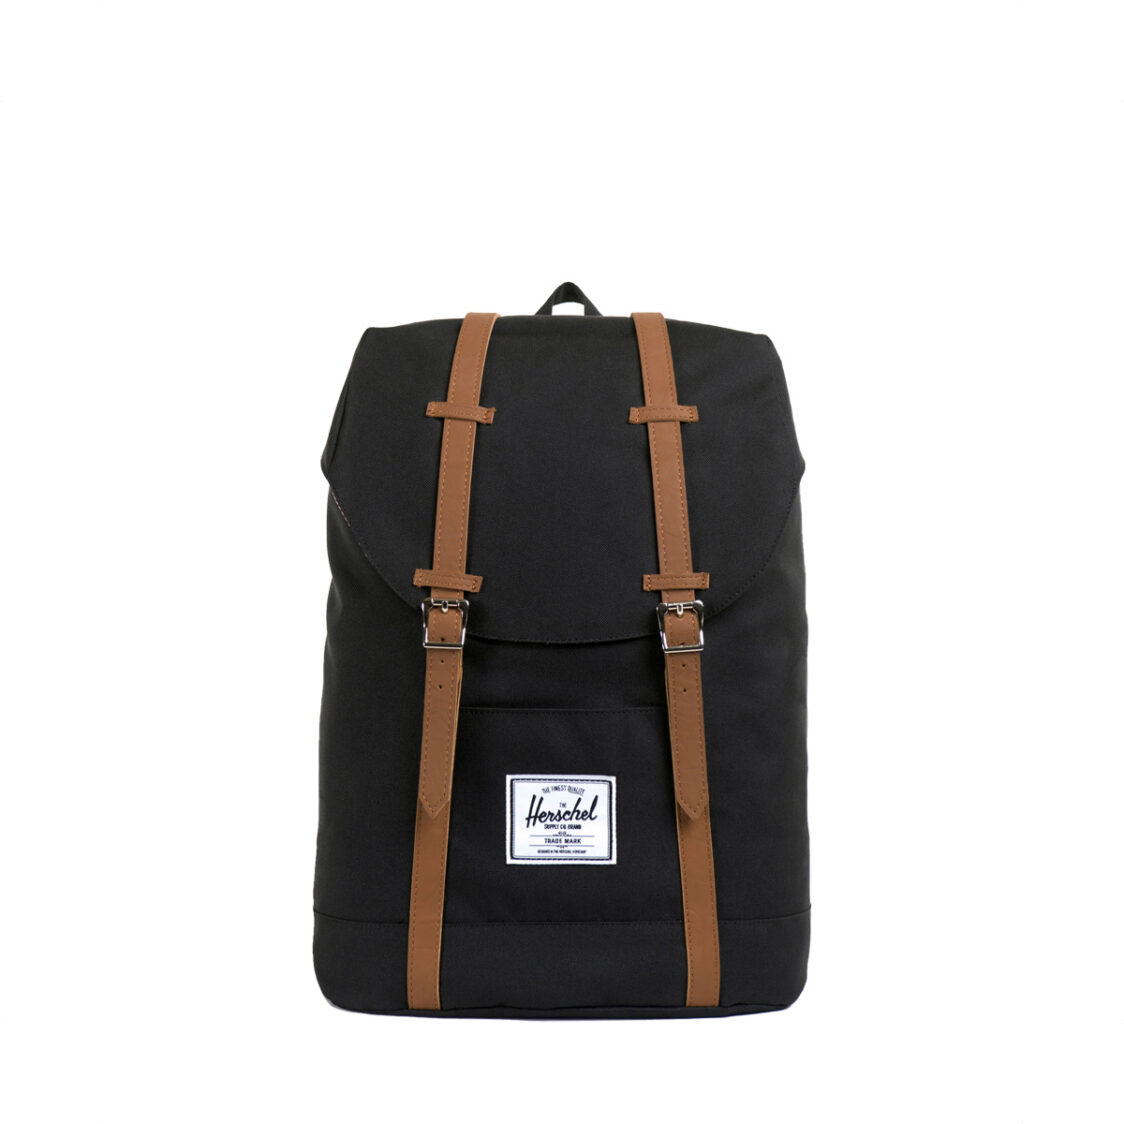 Herschel Retreat BlackTan Synthetic Leather Backpack 10066-00001-OS